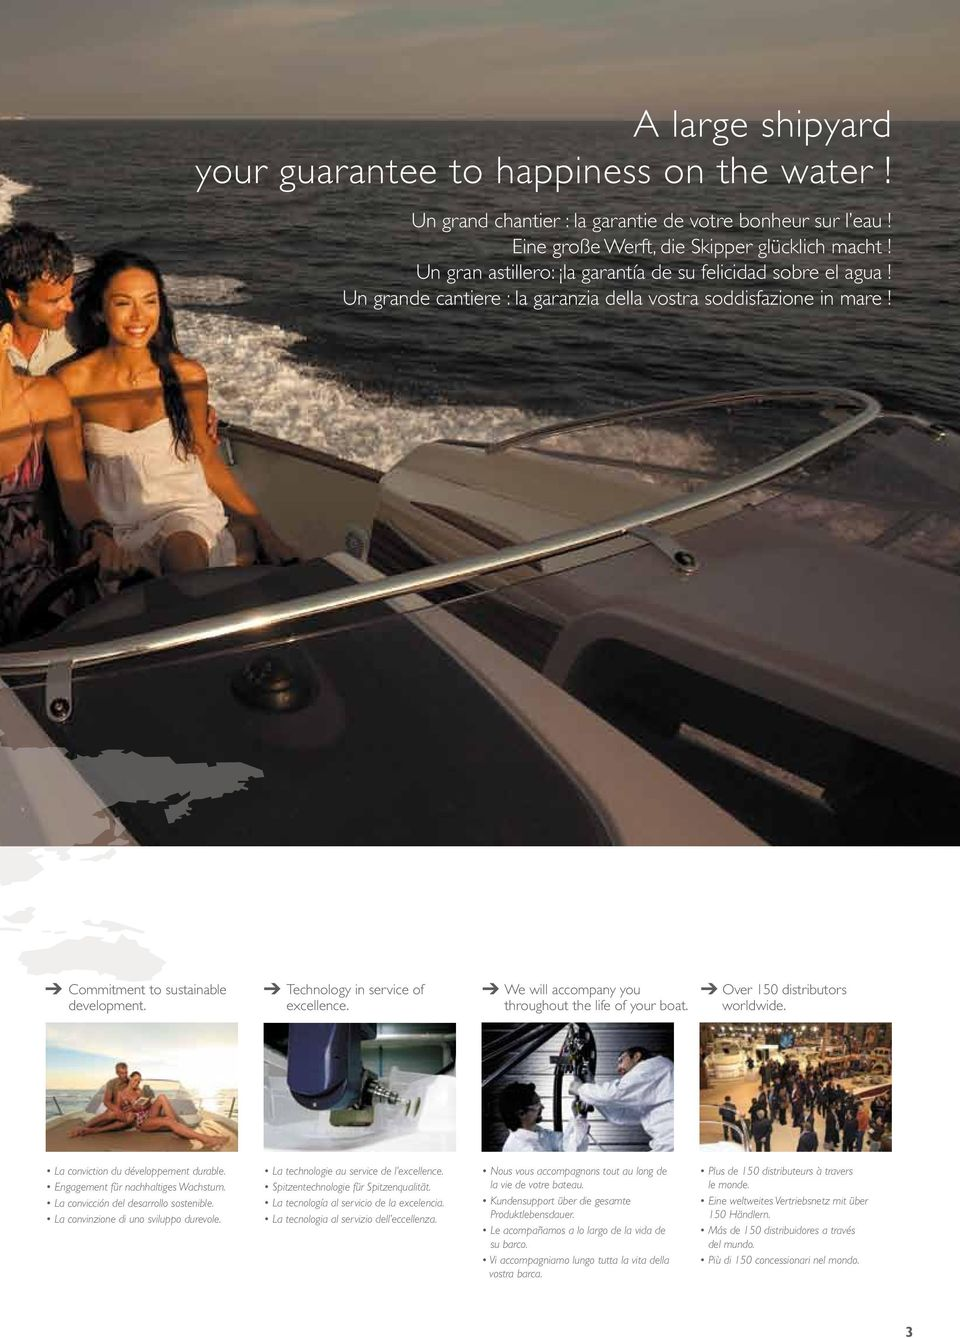 Technology in service of excellence. We will accompany you throughout the life of your boat. Over 150 distributors worldwide. La conviction du développement durable.